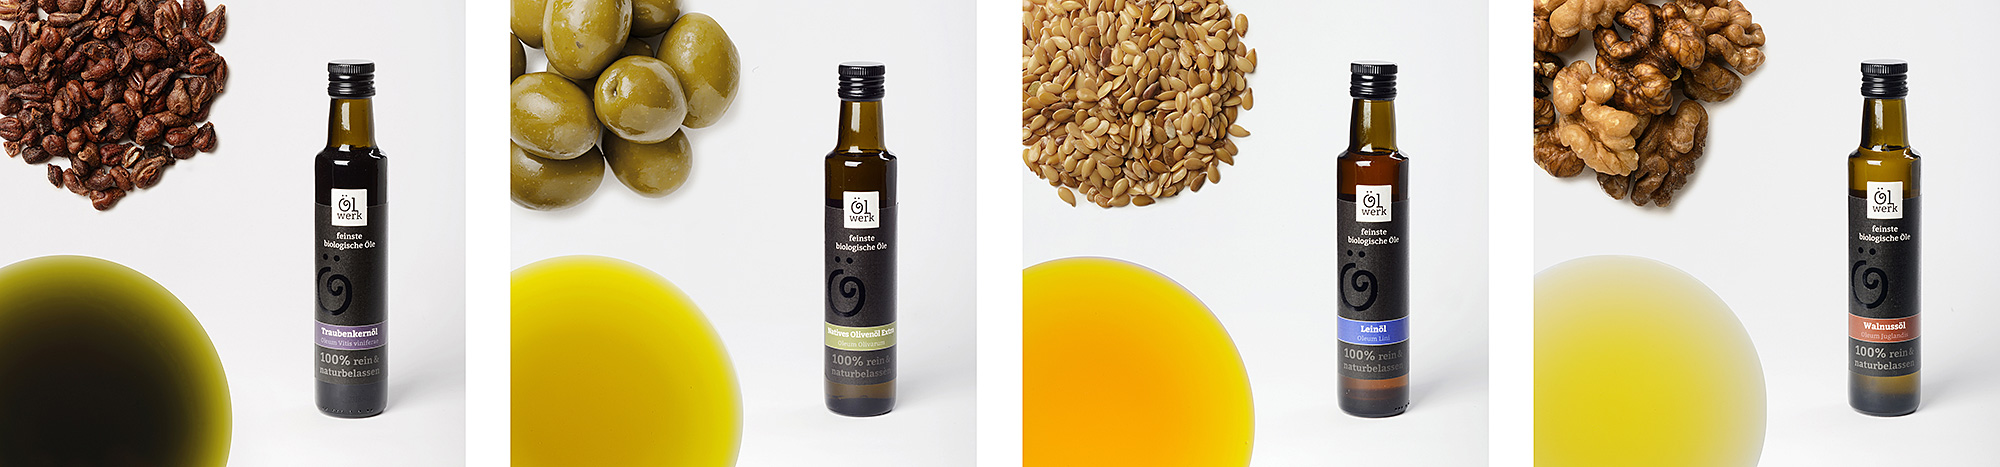 Oel_oil-food-Anna-Dabrowski-fotografie-fotografin-photo-food-berlin-design